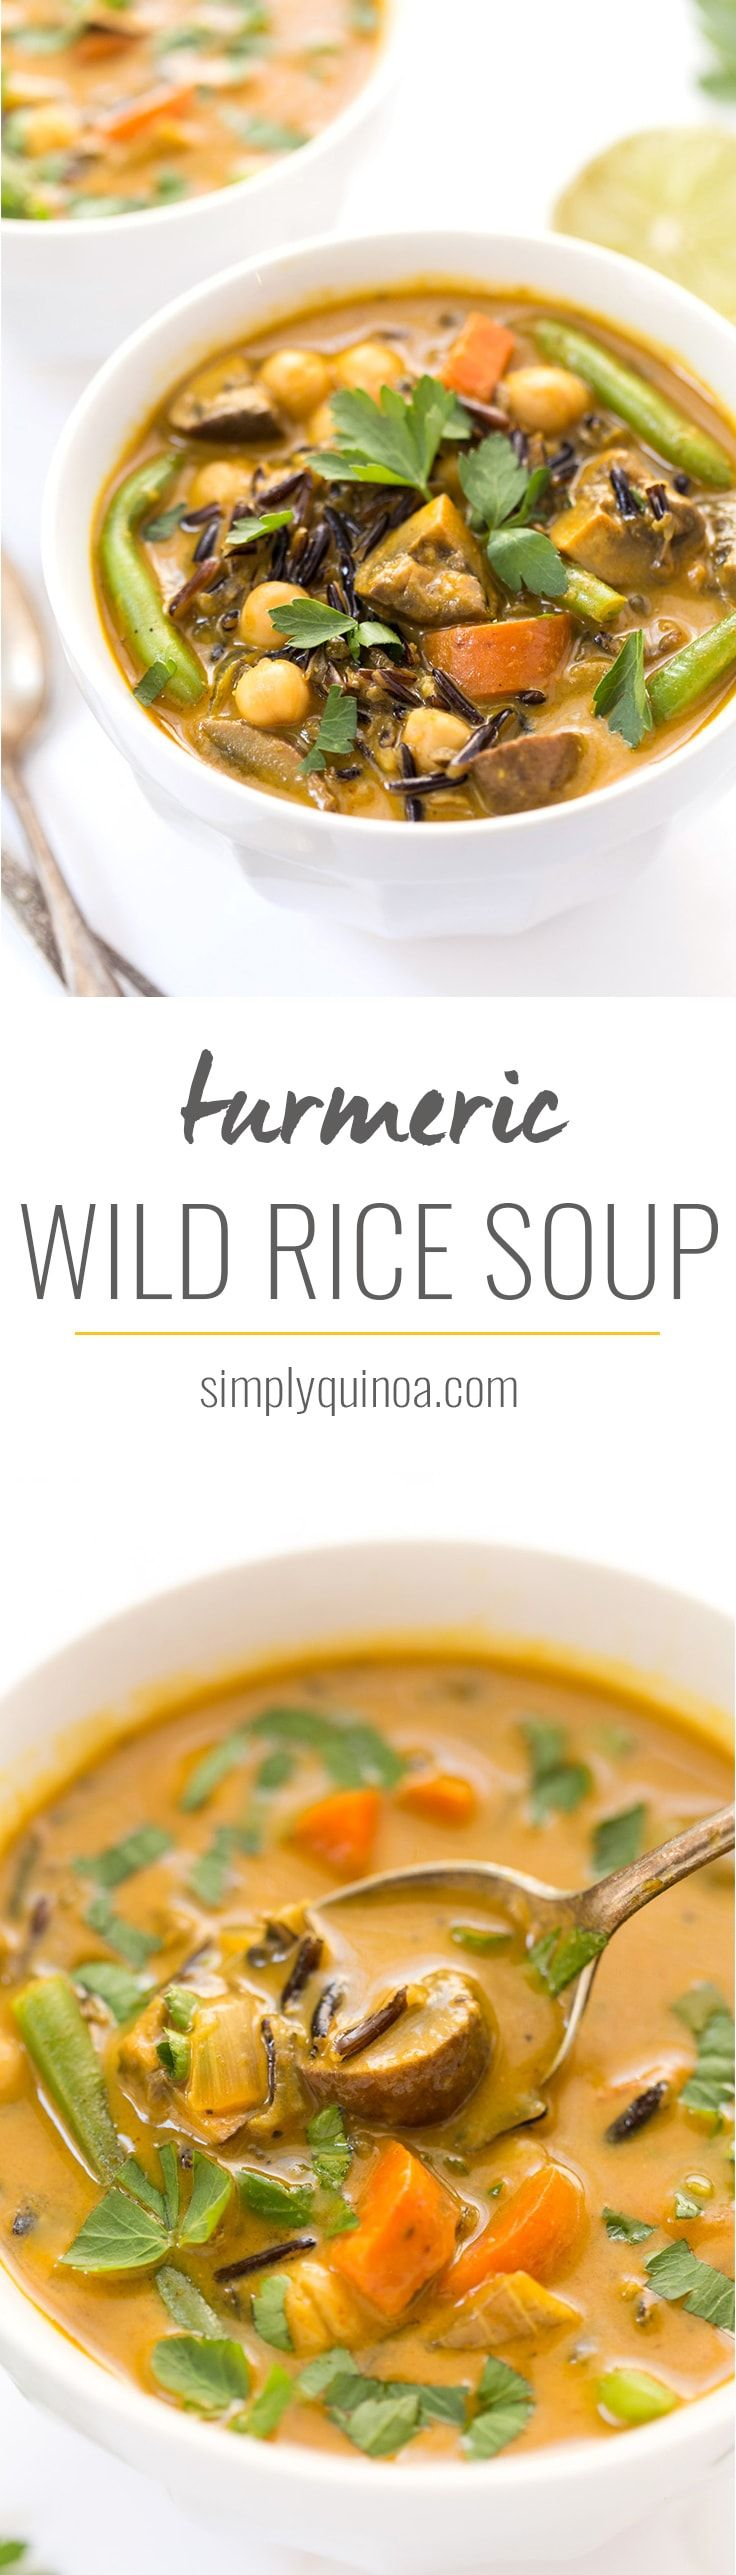 This ultra creamy coconut and turmeric wild rice soup is vegan and is packed with veggies. Makes for an easy one-pot dinner and freezes well for leftovers!